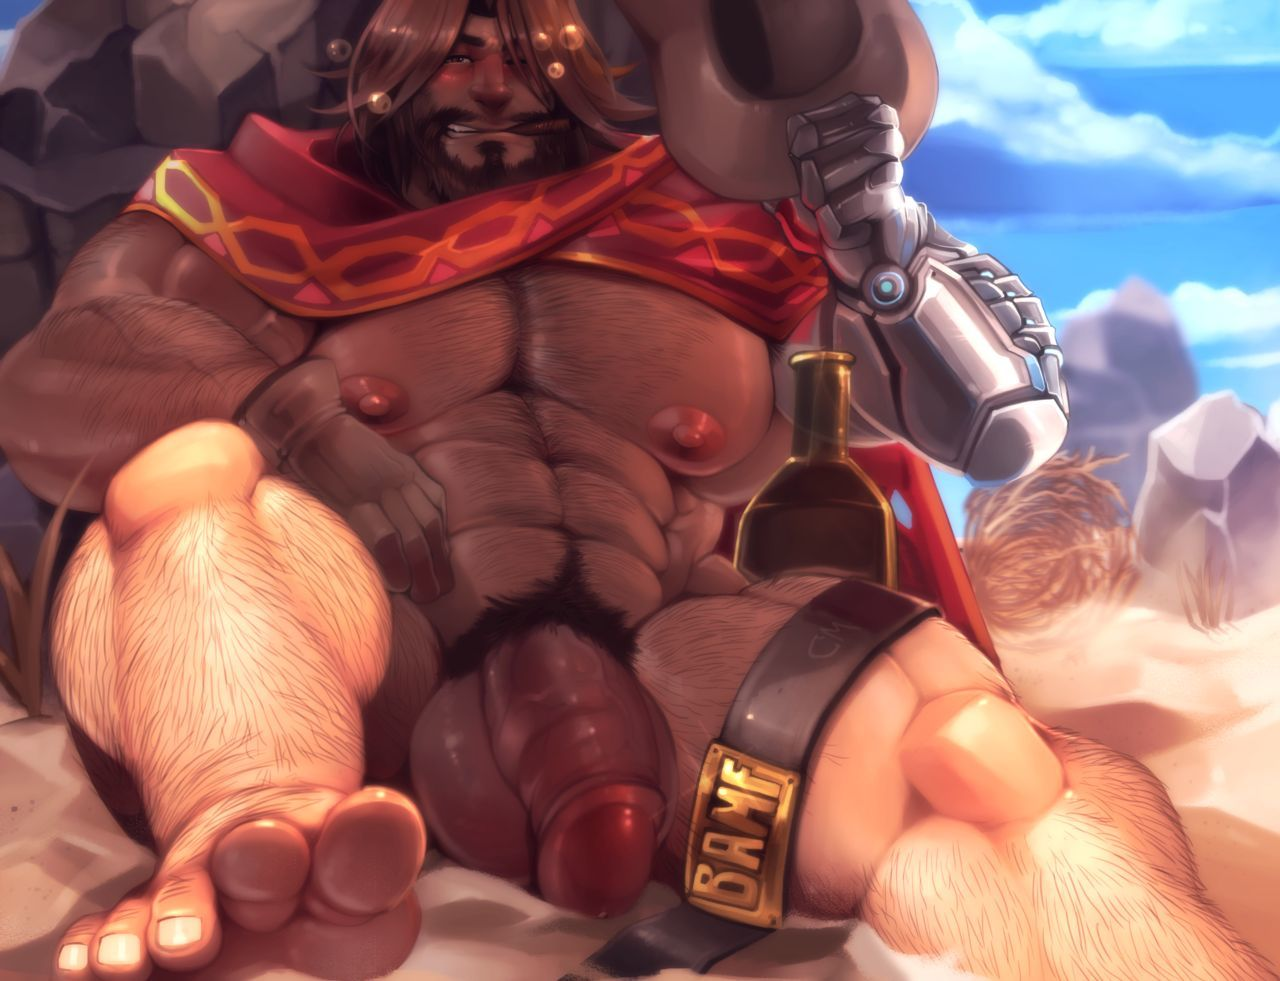 Overwatch PACK I - part 2